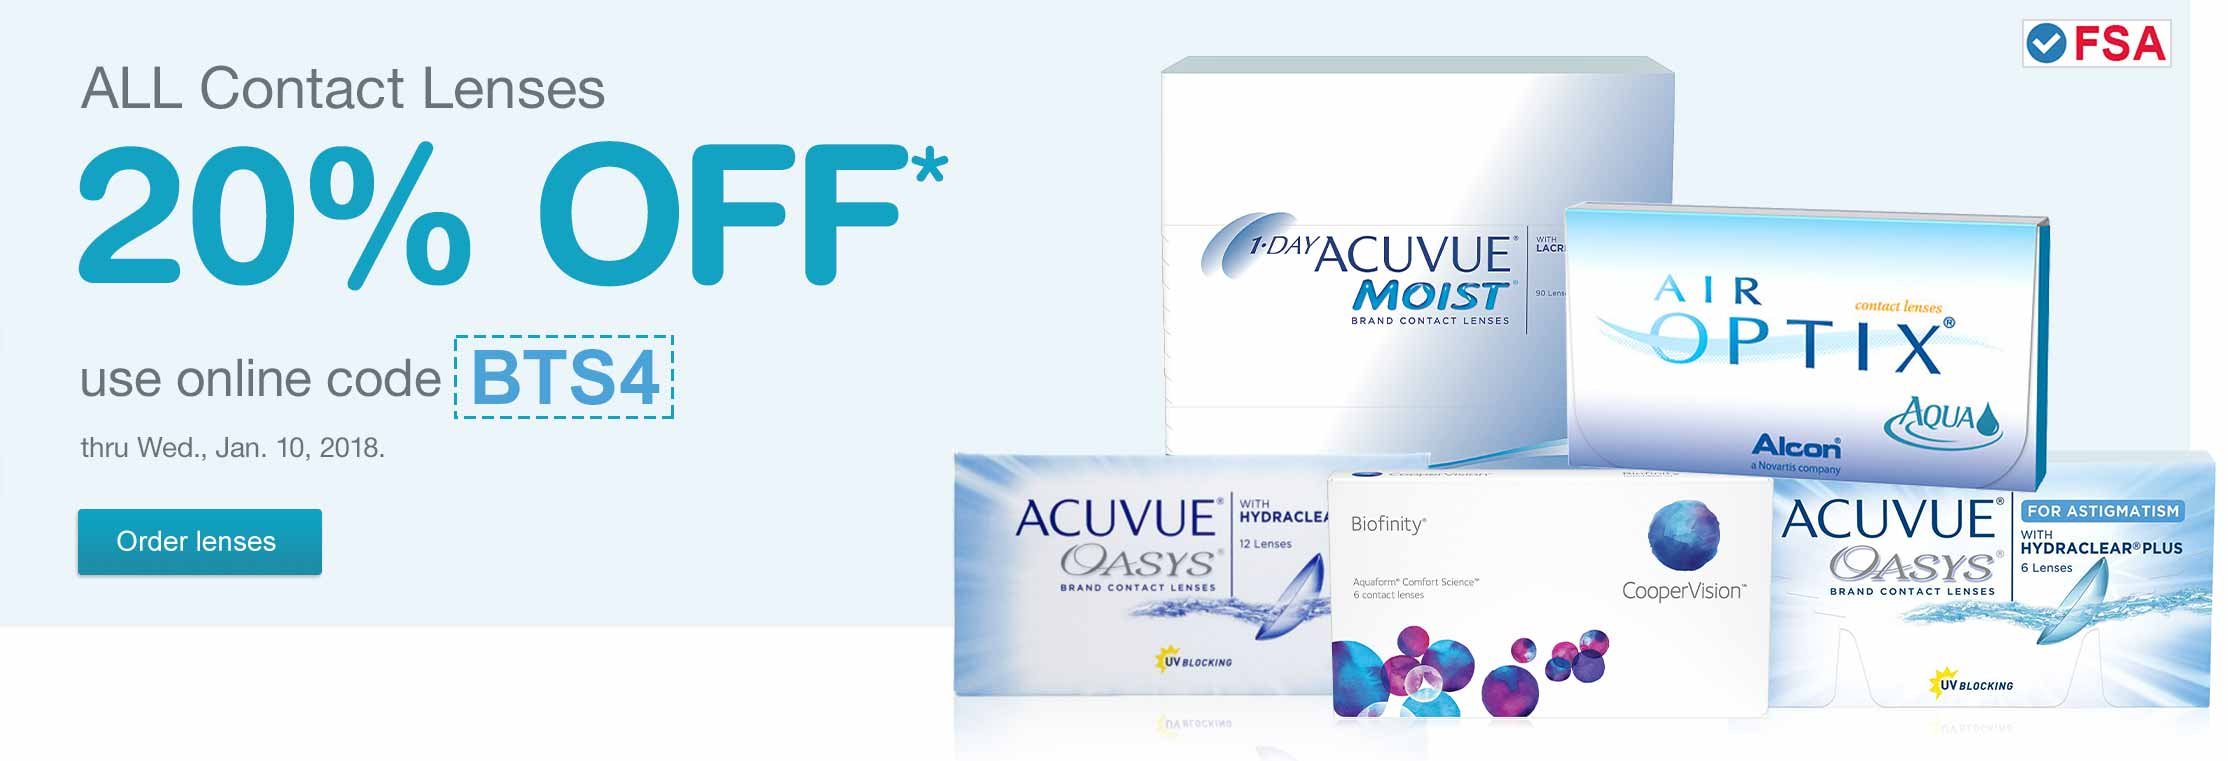 FSA approved. All Contact Lenses 20% OFF.* Use online code BTS4 thru Wed., Jan. 10, 2018. Order lenses.